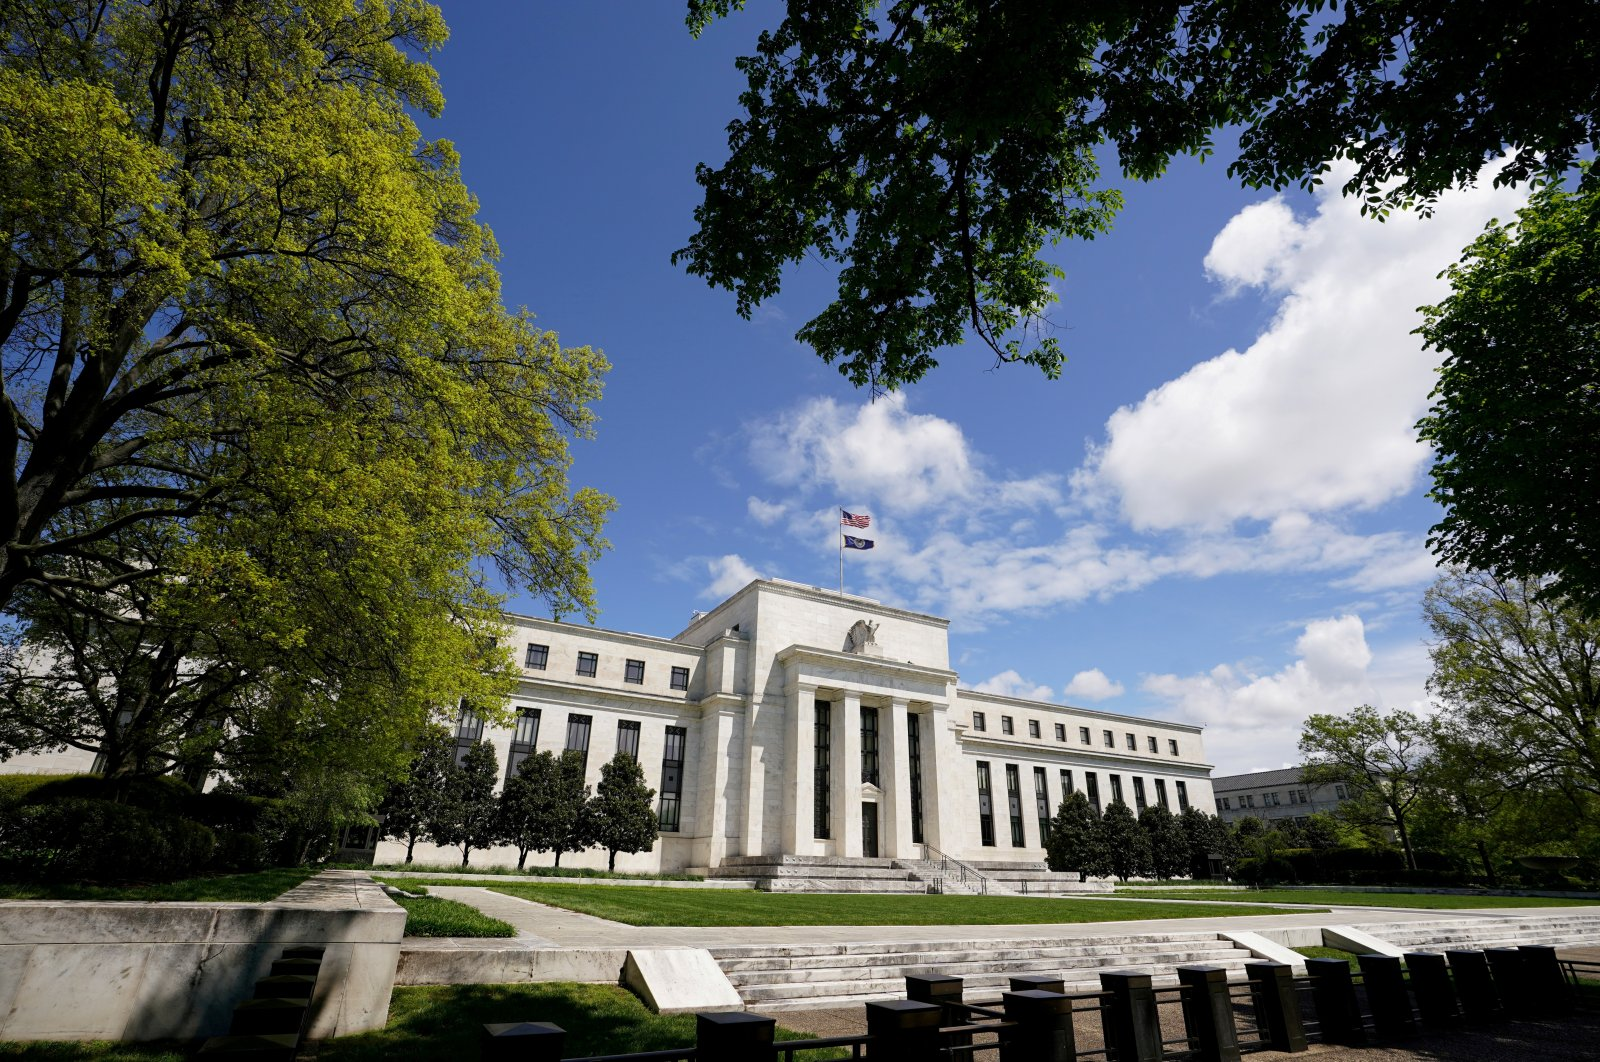 The Federal Reserve (Fed) building is set against a blue sky in Washington, D.C., U.S., May 1, 2020. (Reuters Photo)